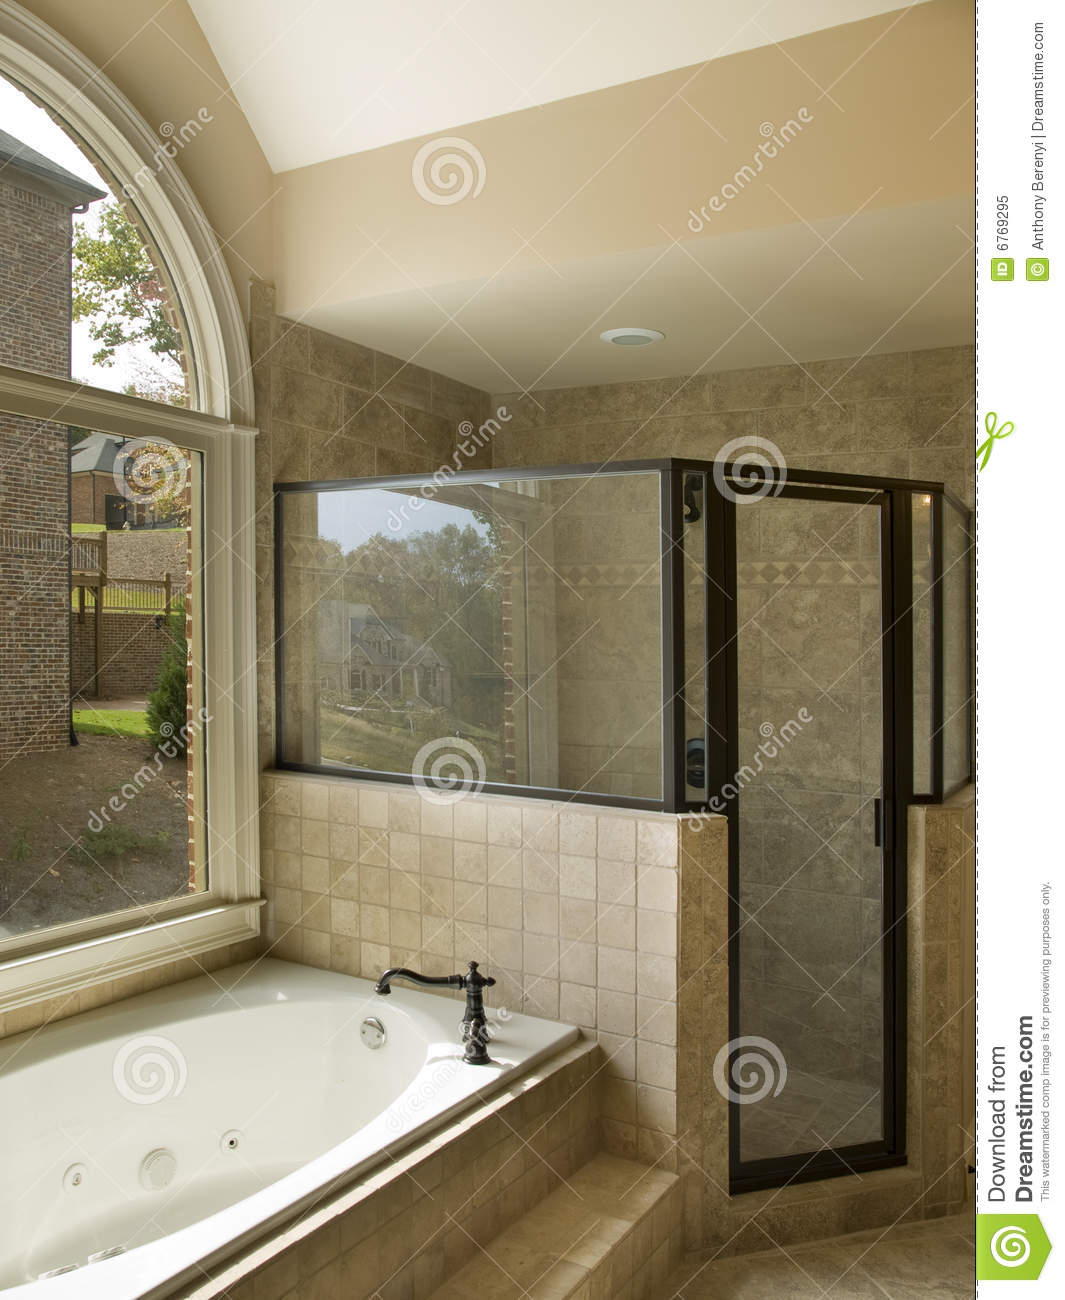 Luxury Bathroom With Jacuzzi And Shower Stock Image